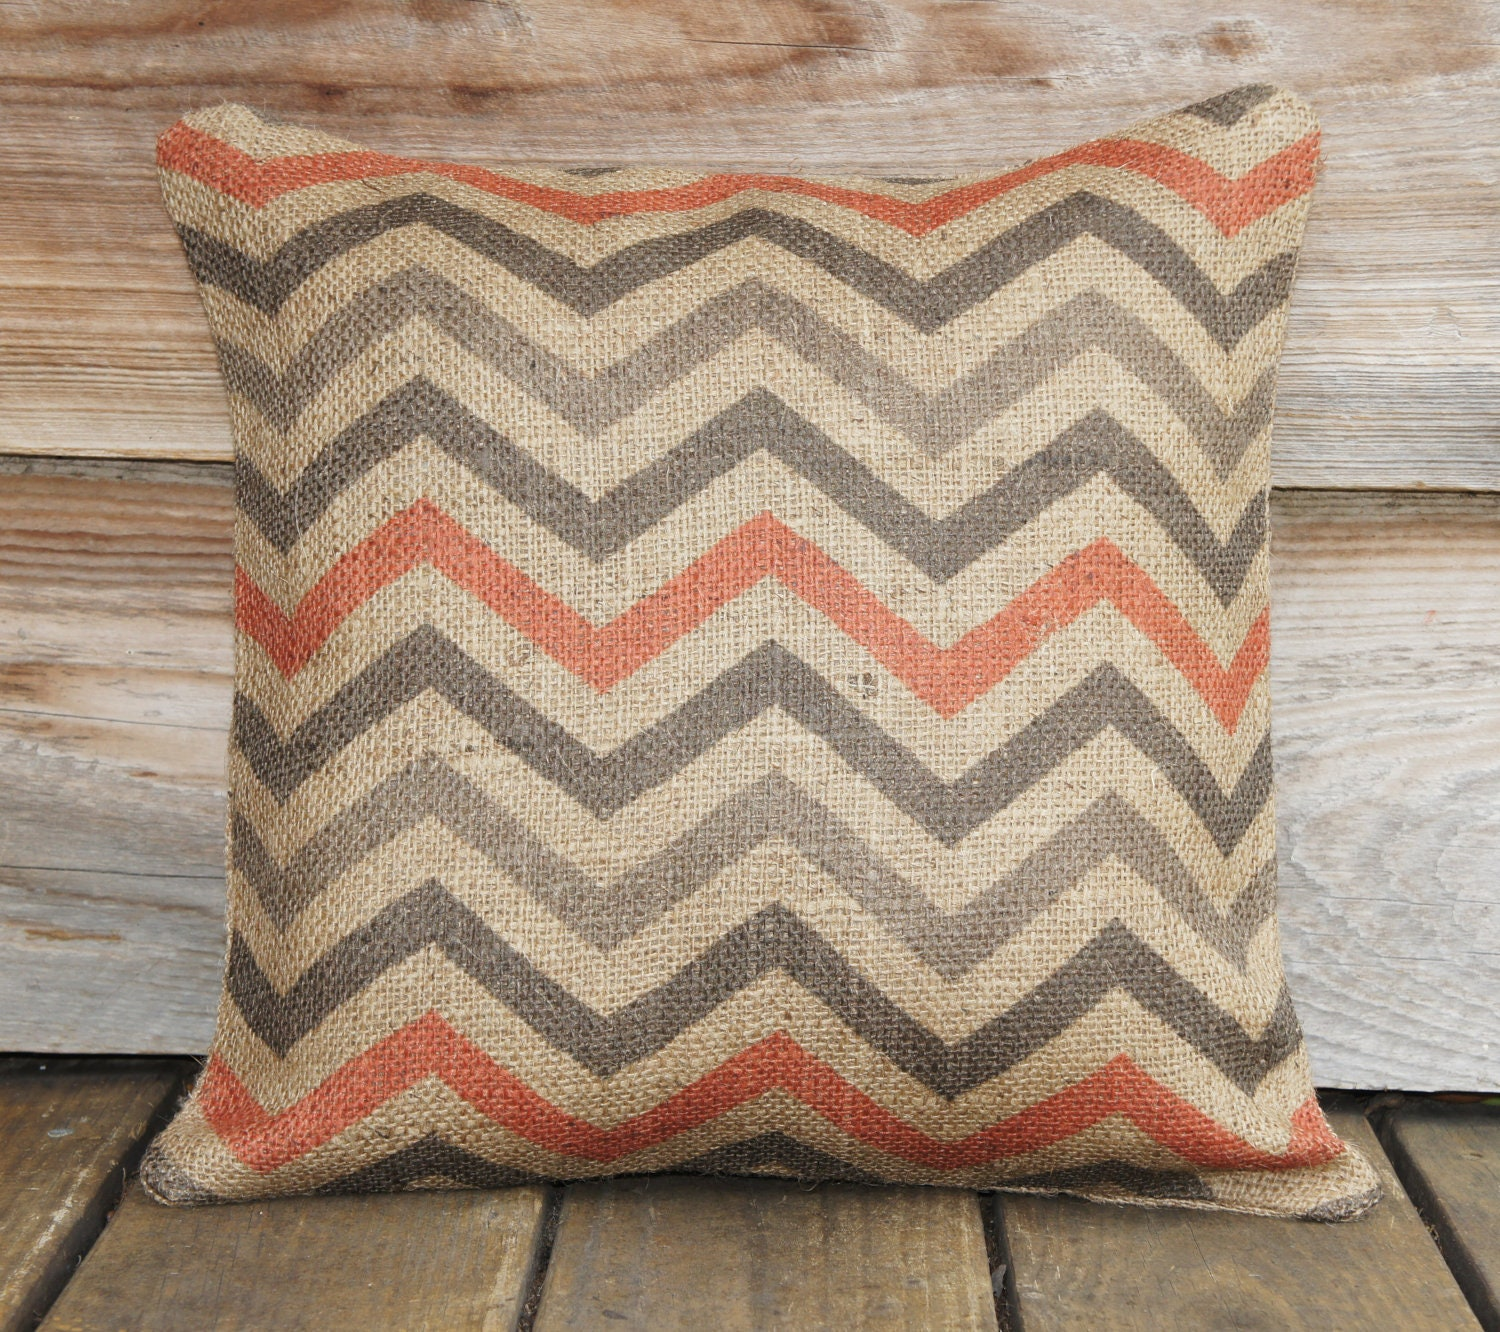 Halloween Orange Chevron Pillow Cover, Decorative Throw Pillow, Burlap Pillow, Feed Sack, Accent Pillow, Zig Zag 16x16